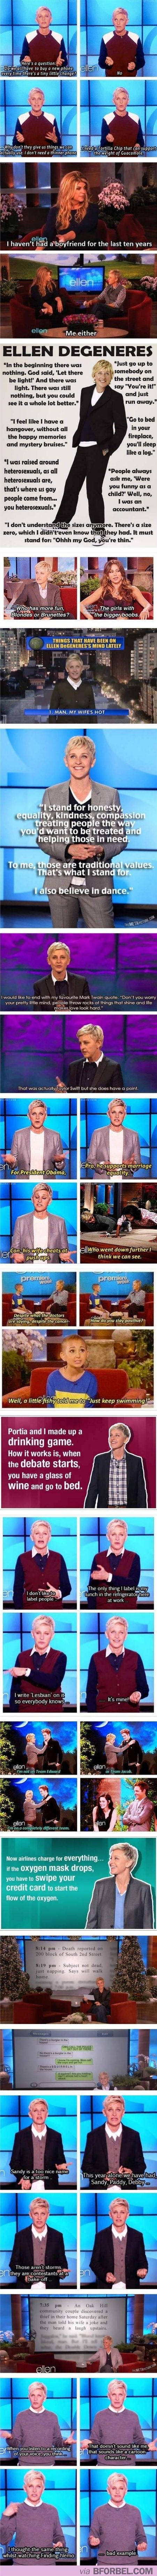 The Best Moments and Quotes from Ellen Degeneres - No Need to Apply  Some of these are pretty great